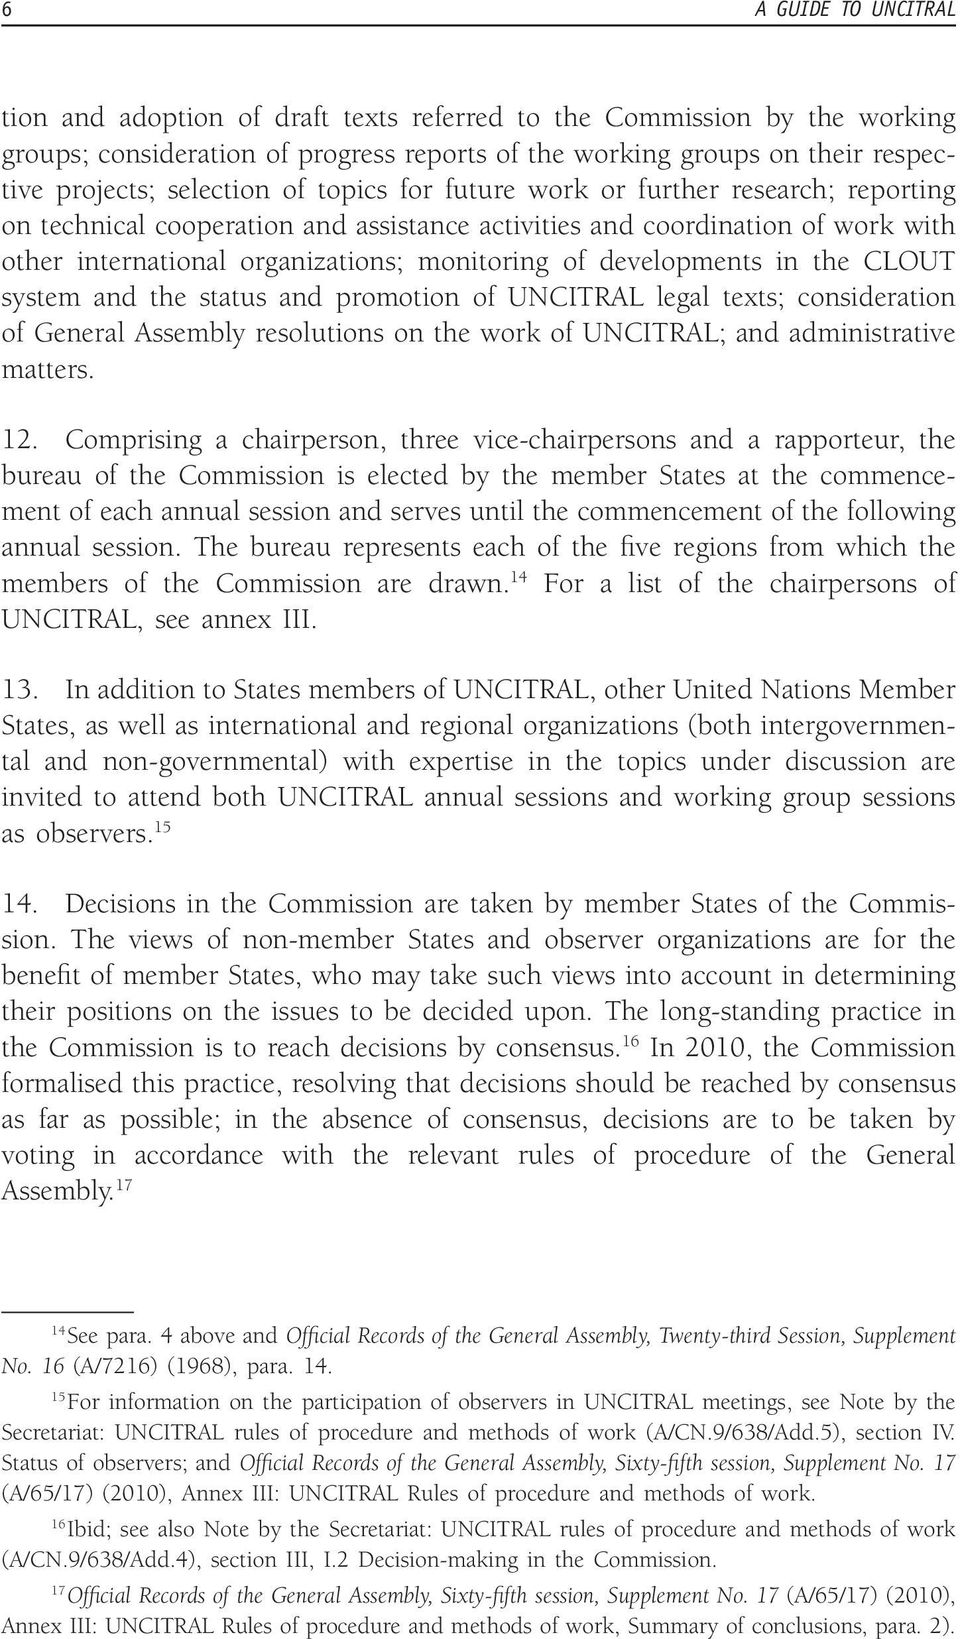 developments in the CLOUT system and the status and promotion of UNCITRAL legal texts; consideration of General Assembly resolutions on the work of UNCITRAL; and administrative matters. 12.